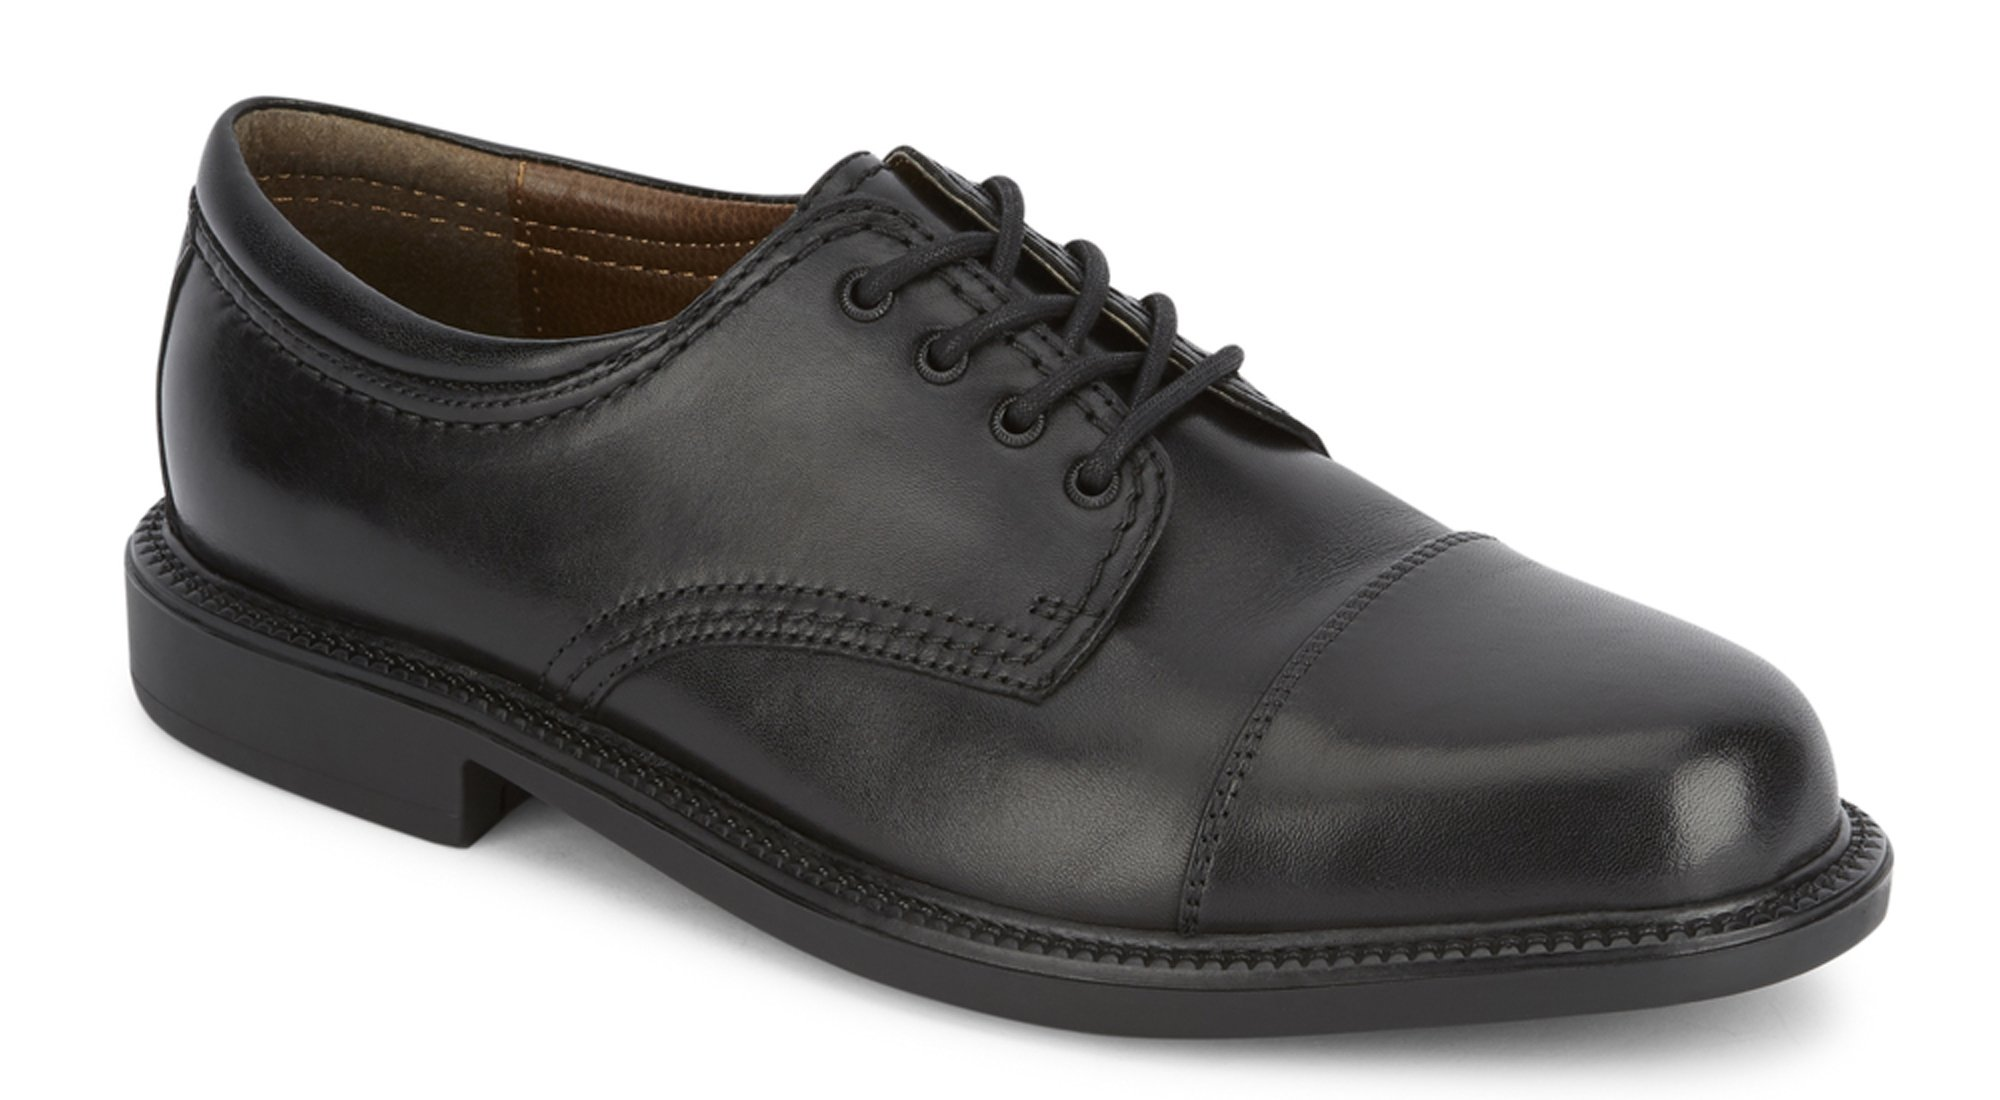 Dockers Men's Gordon Leather Oxford Dress Shoe,Black,13 W US by Dockers